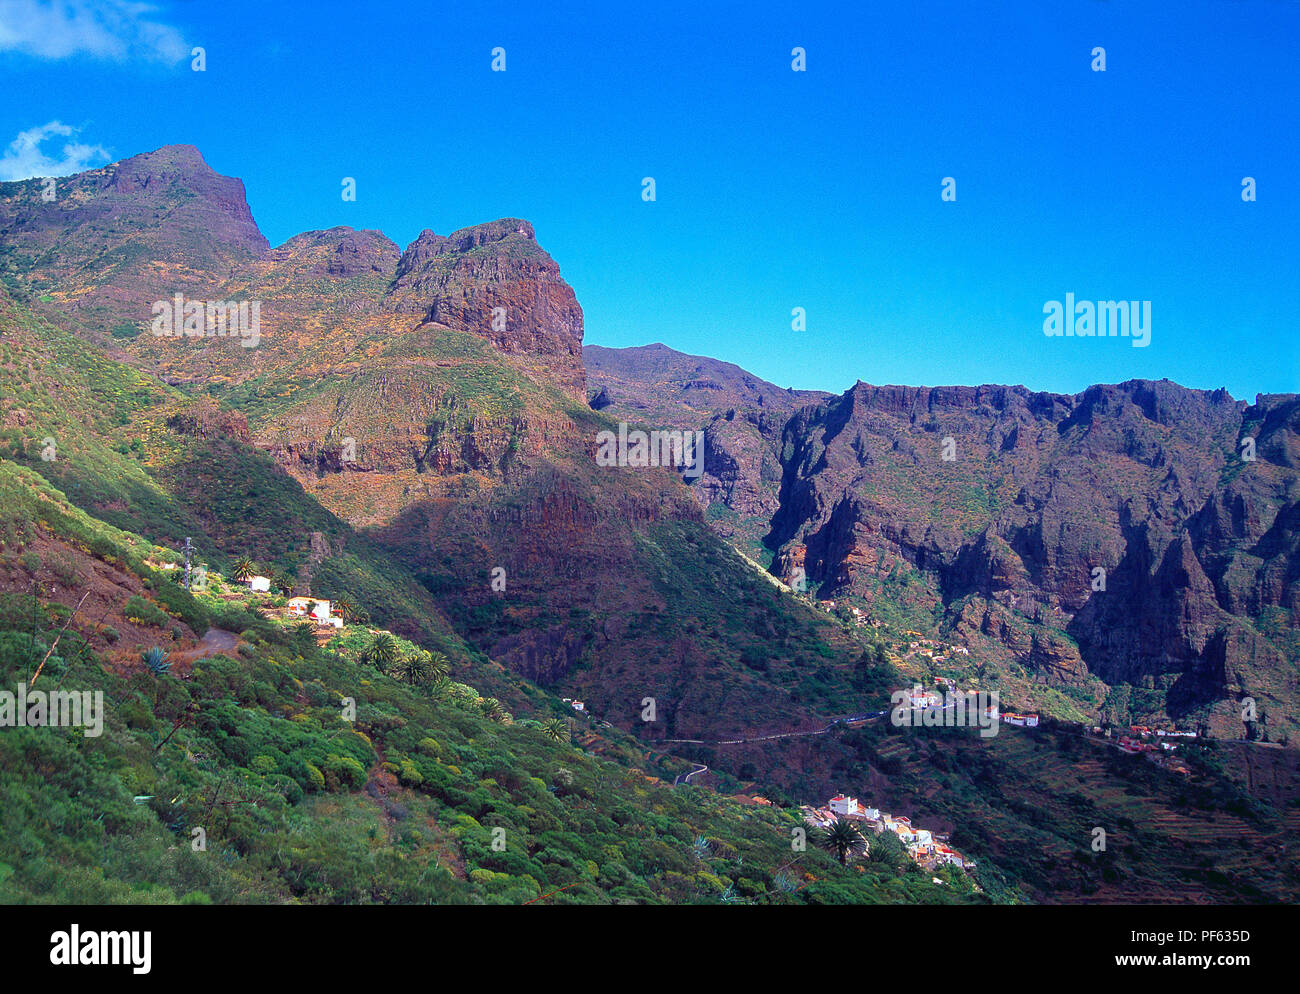 Landscape. Teno Rural Park, Tenerife island, Canary Islands, Spain. Stock Photo